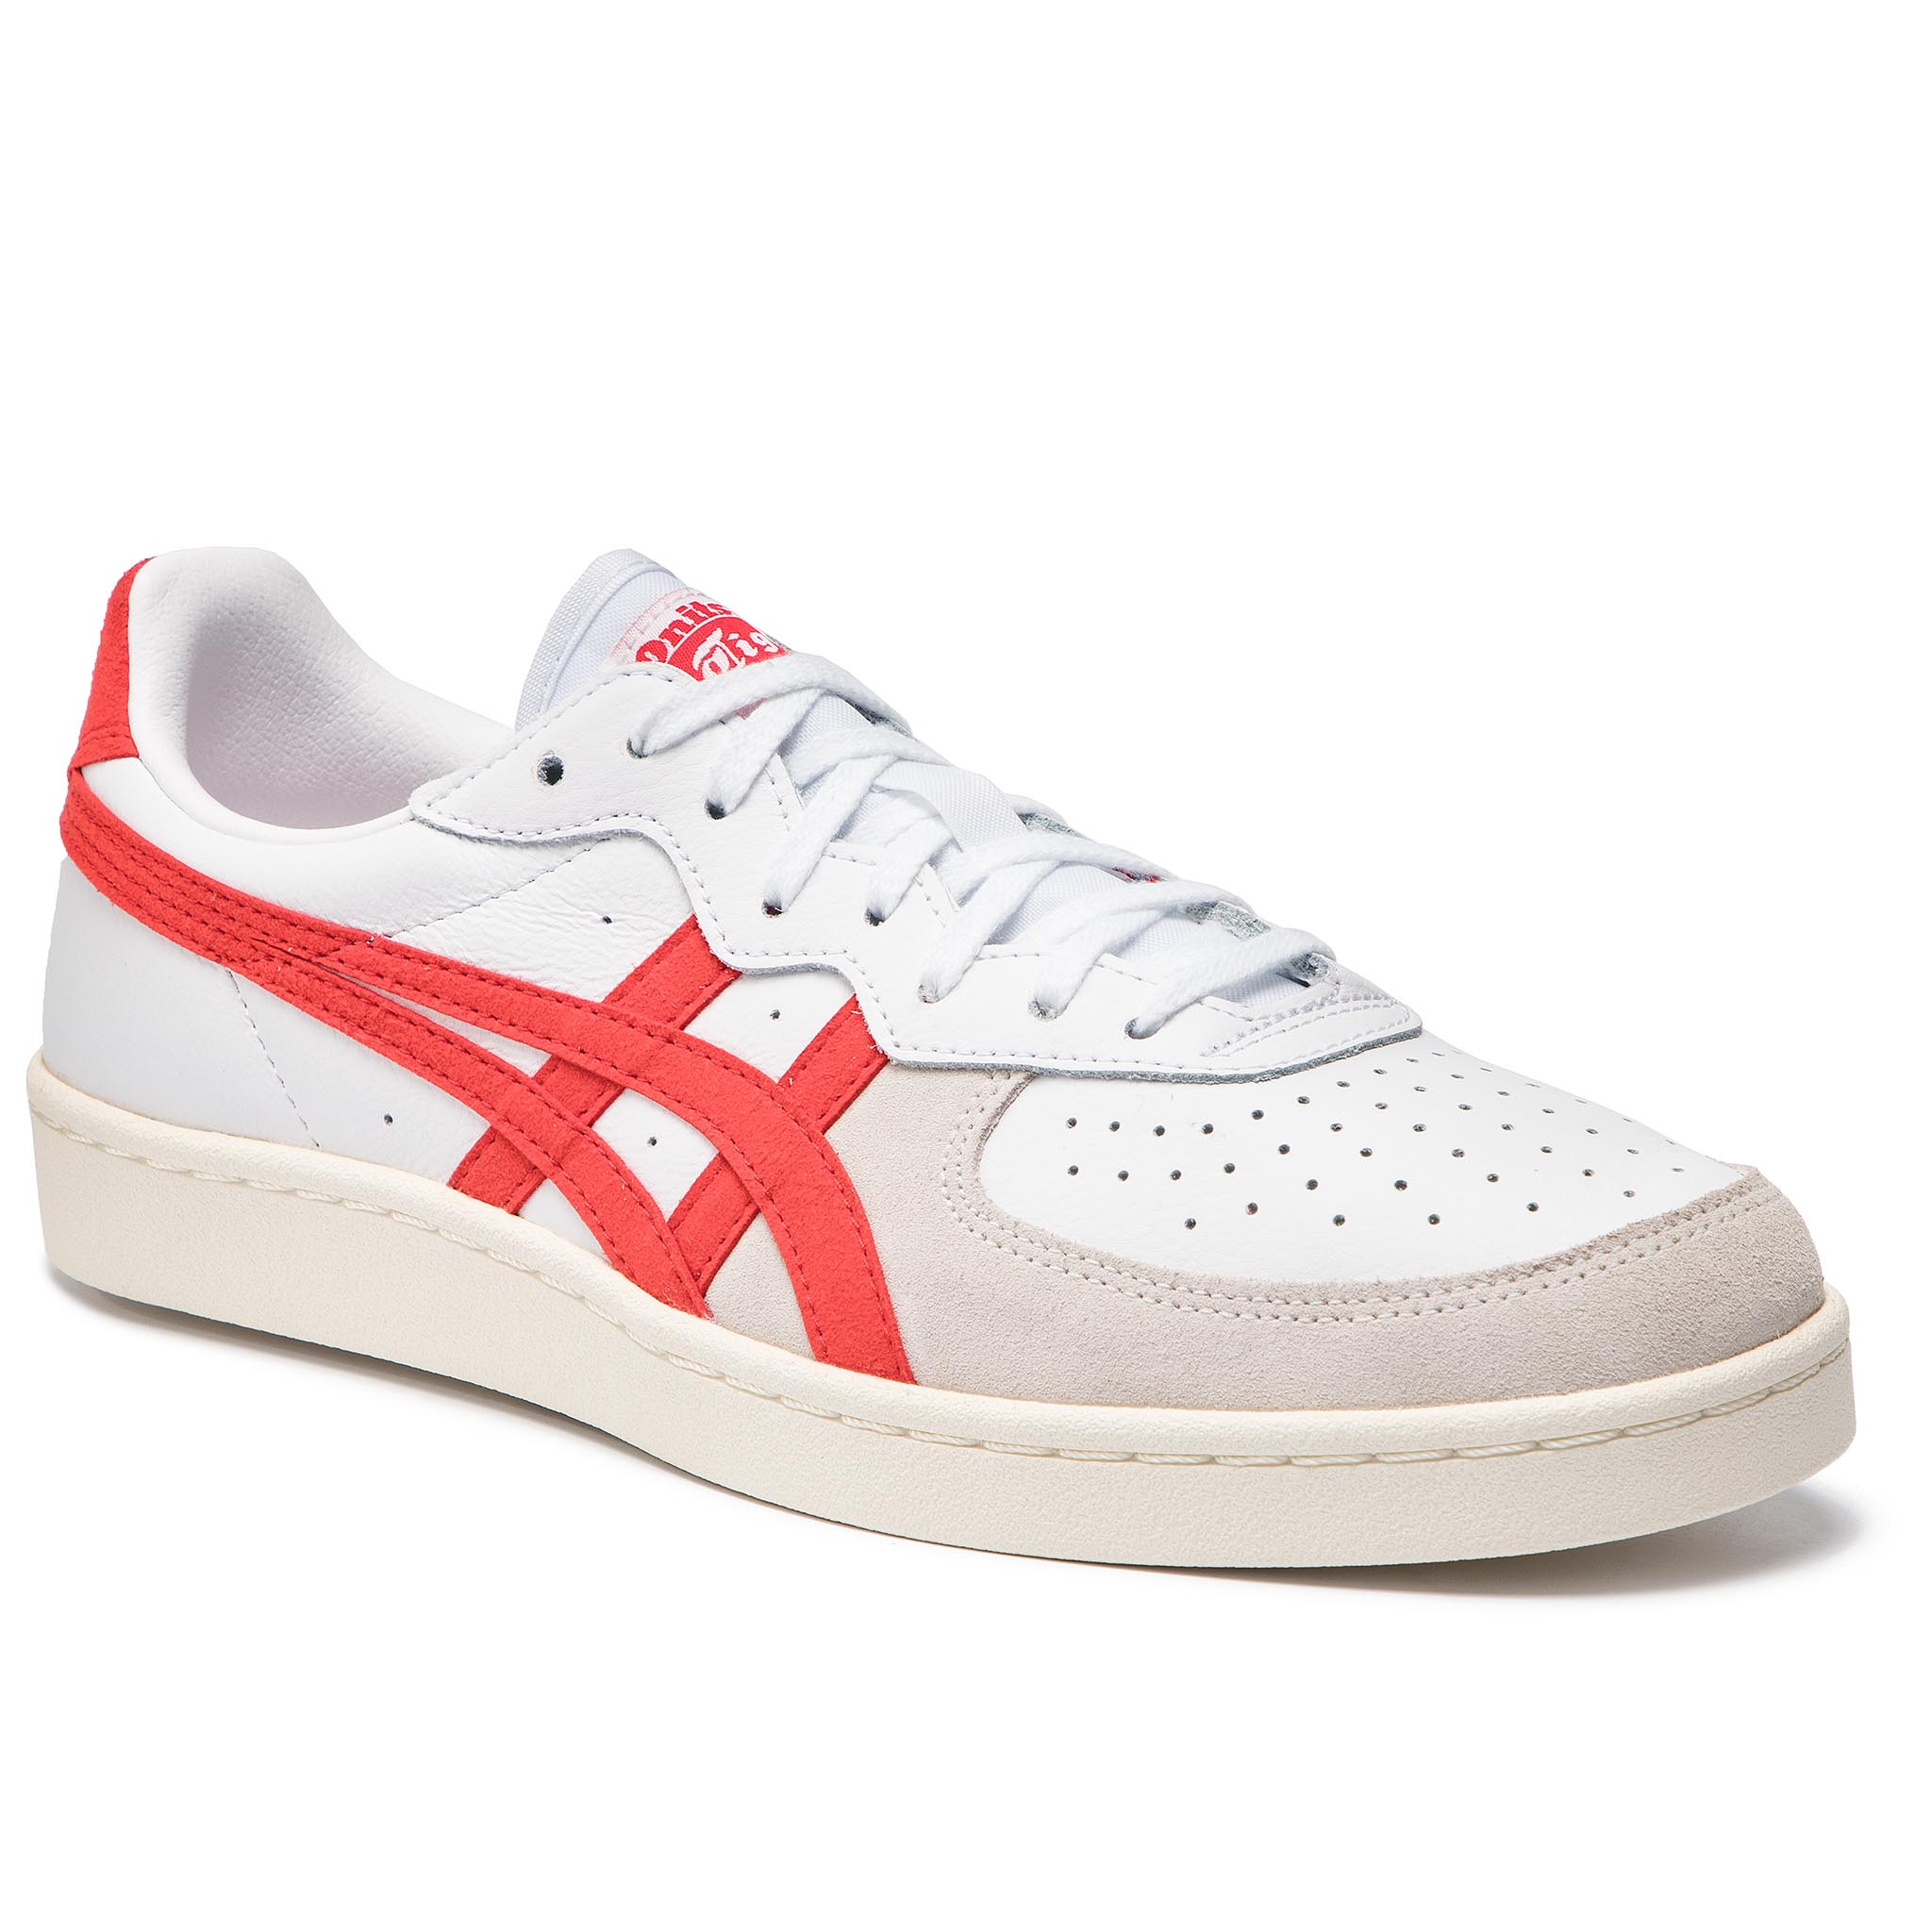 pretty nice 5cfd2 2a74c Sneakers ASICS - ONITSUKA TIGER Gsm D5K1L Honey Ginger/Honey ...